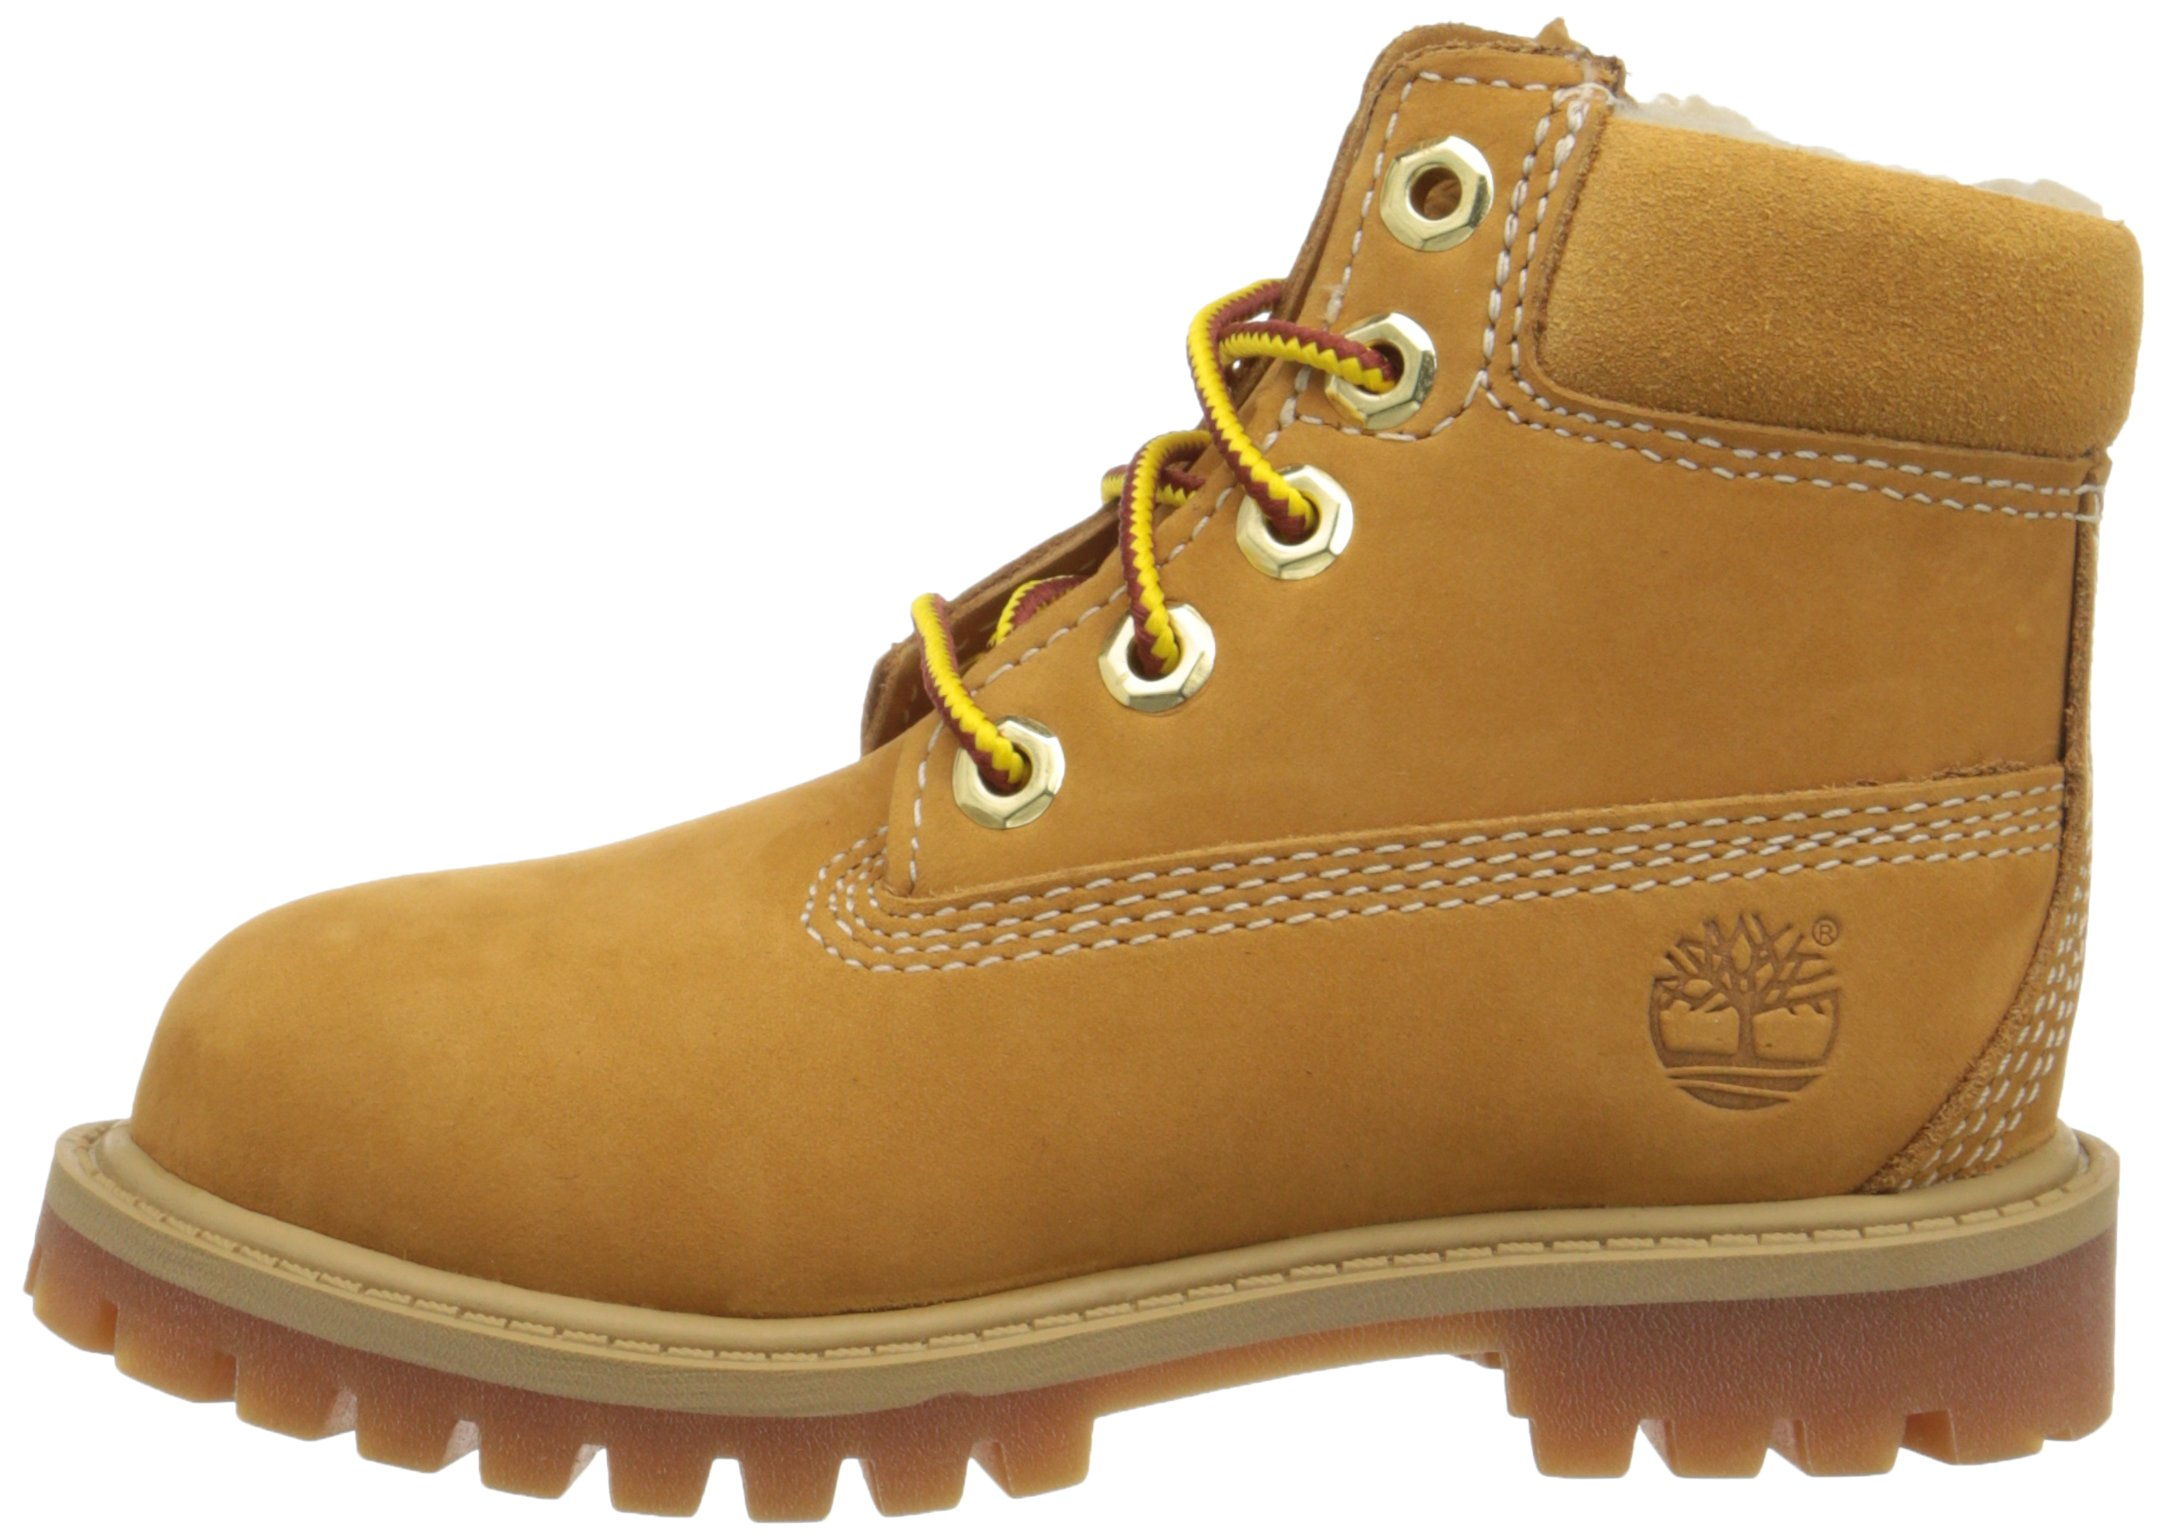 Timberland 6 Inch Premium With Faux Shearling Boot (Toddler/Little Kid/Big Kid), Wheat Nubuck, 4 M US Big Kid by Timberland (Image #5)